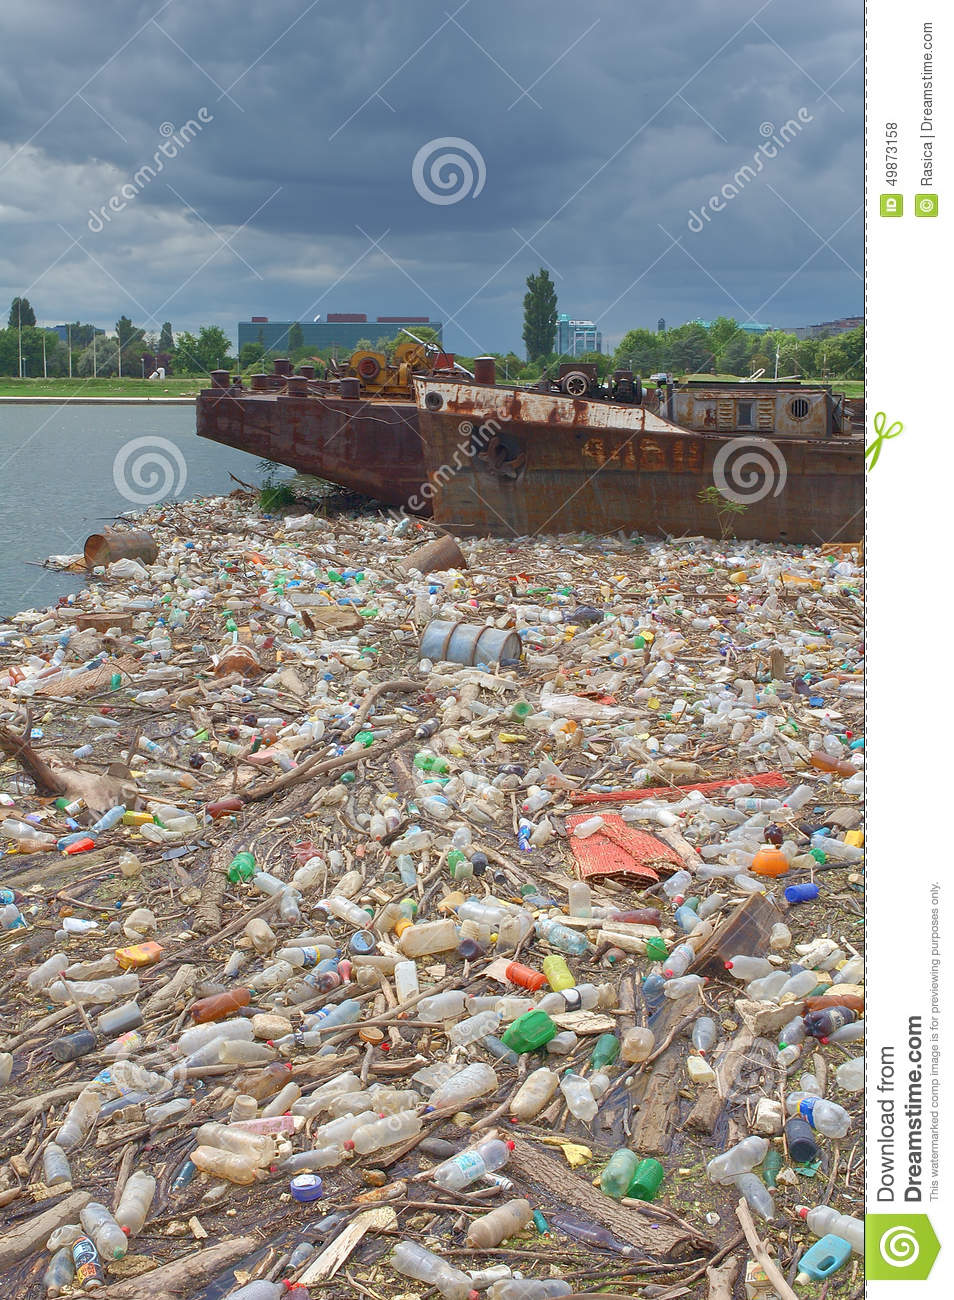 Polluted river bank full of garbage